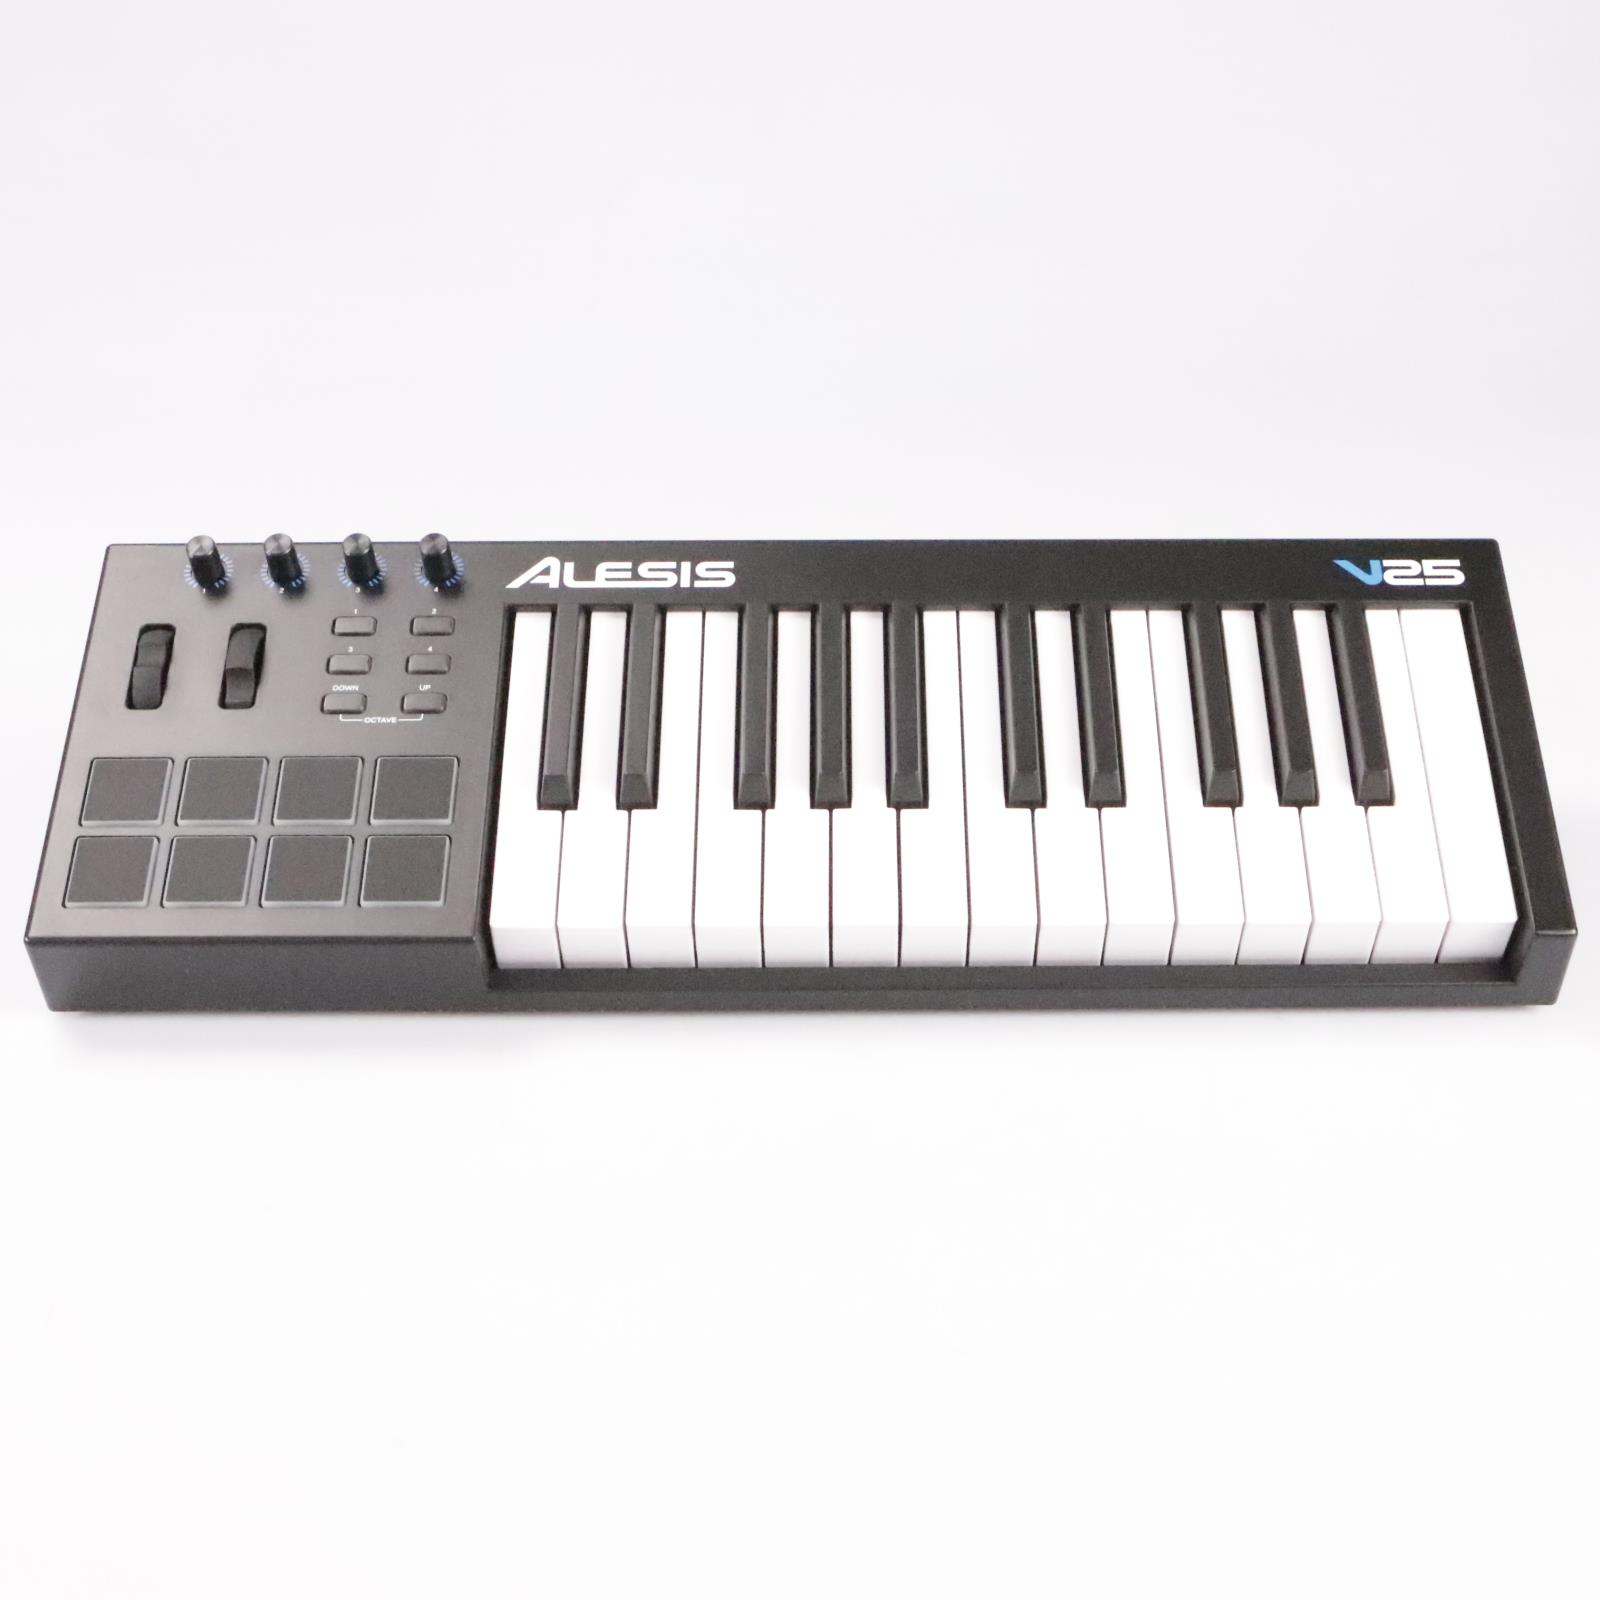 Alesis V25 25-Key USB-MIDI Keyboard Controller Owned by Fall Out Boy #35862